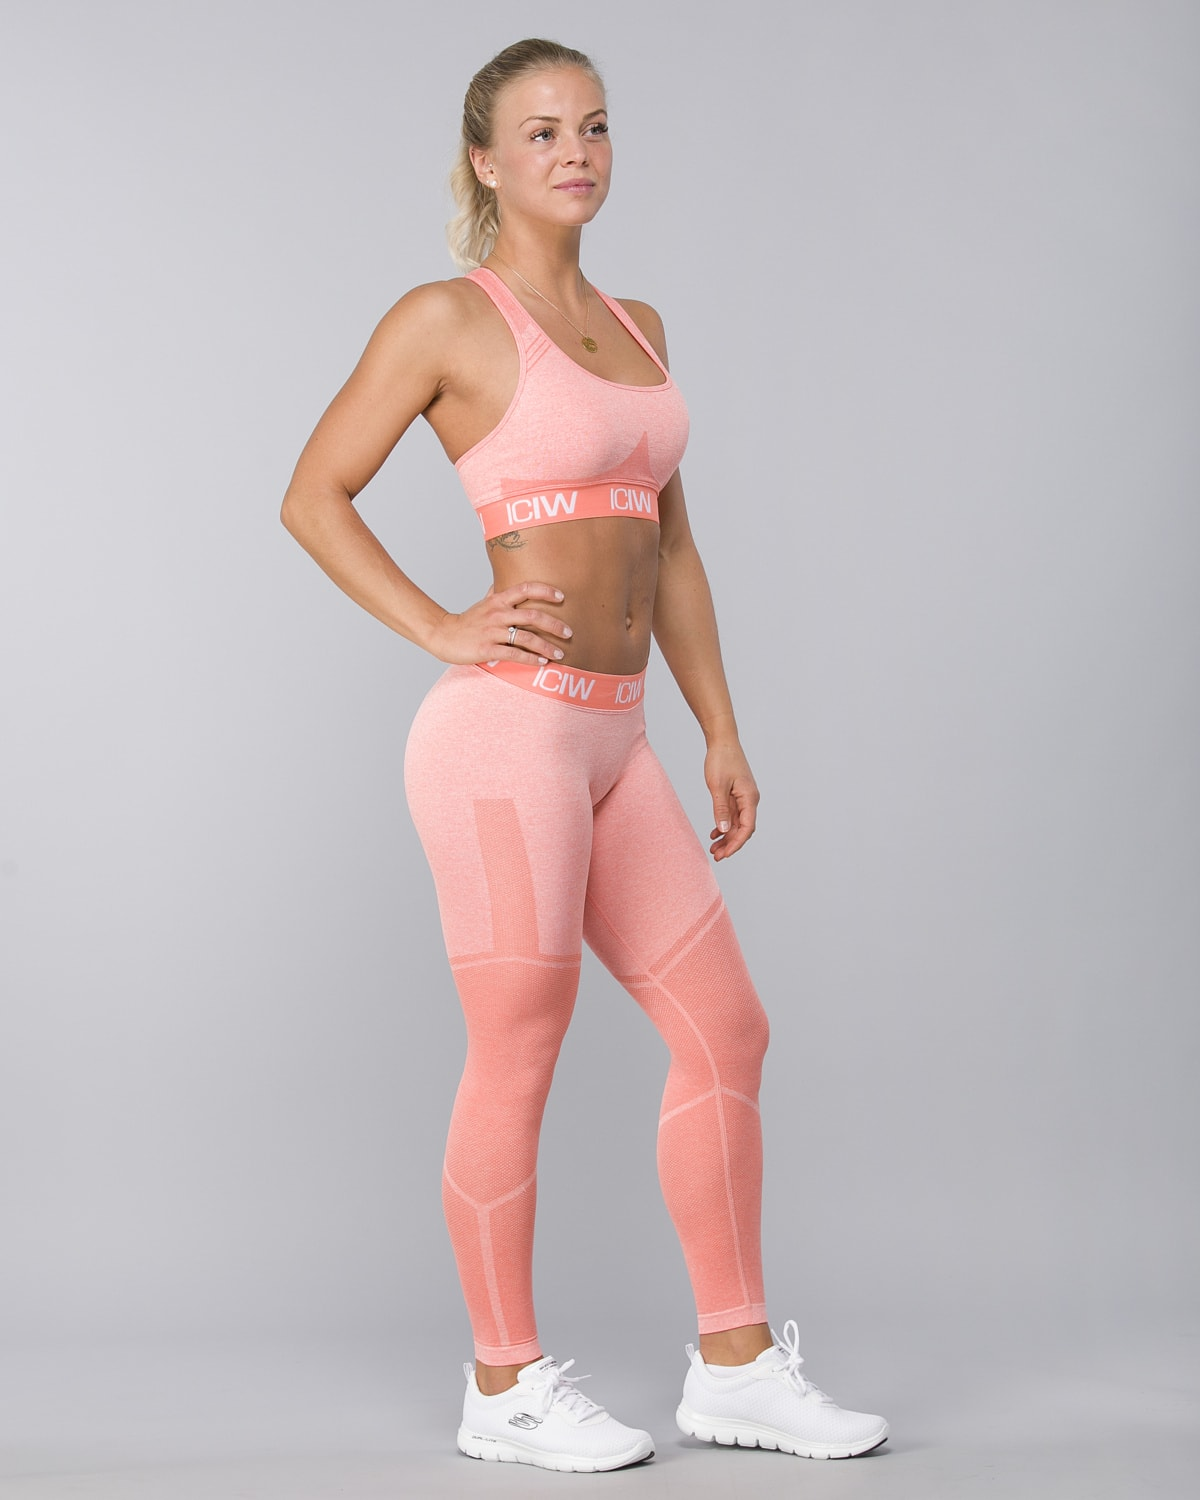 Icaniwill-Seamless Tights–Peach6